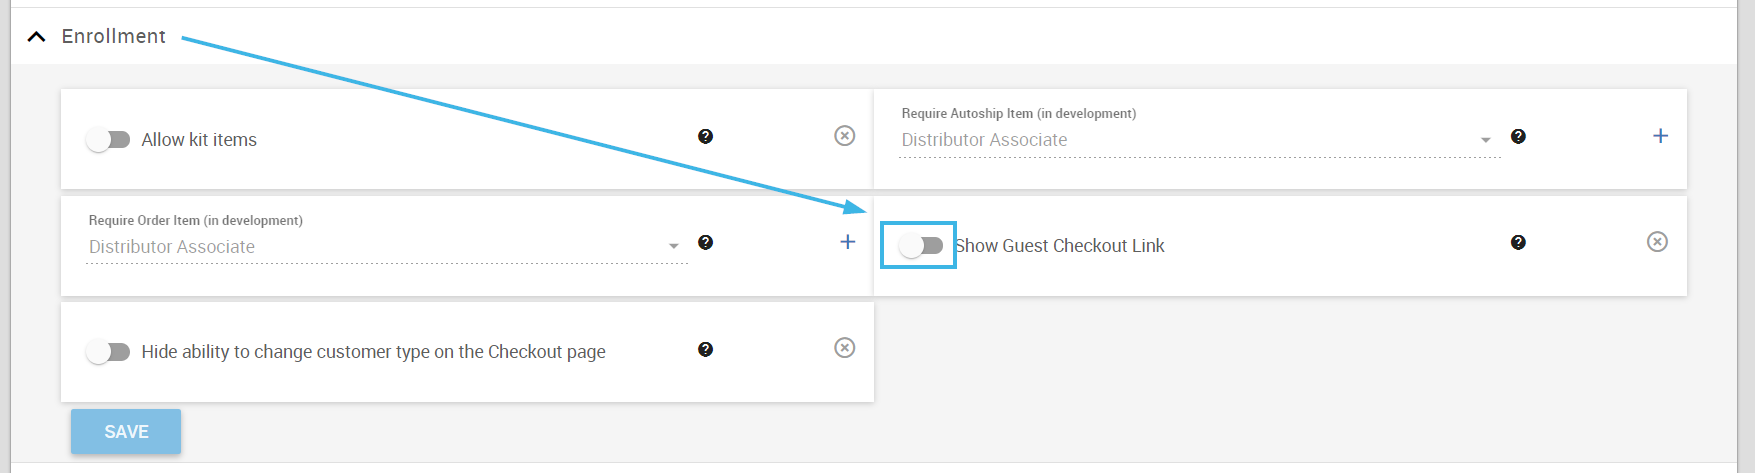 Turn off Show Guest Checkout Link toggle